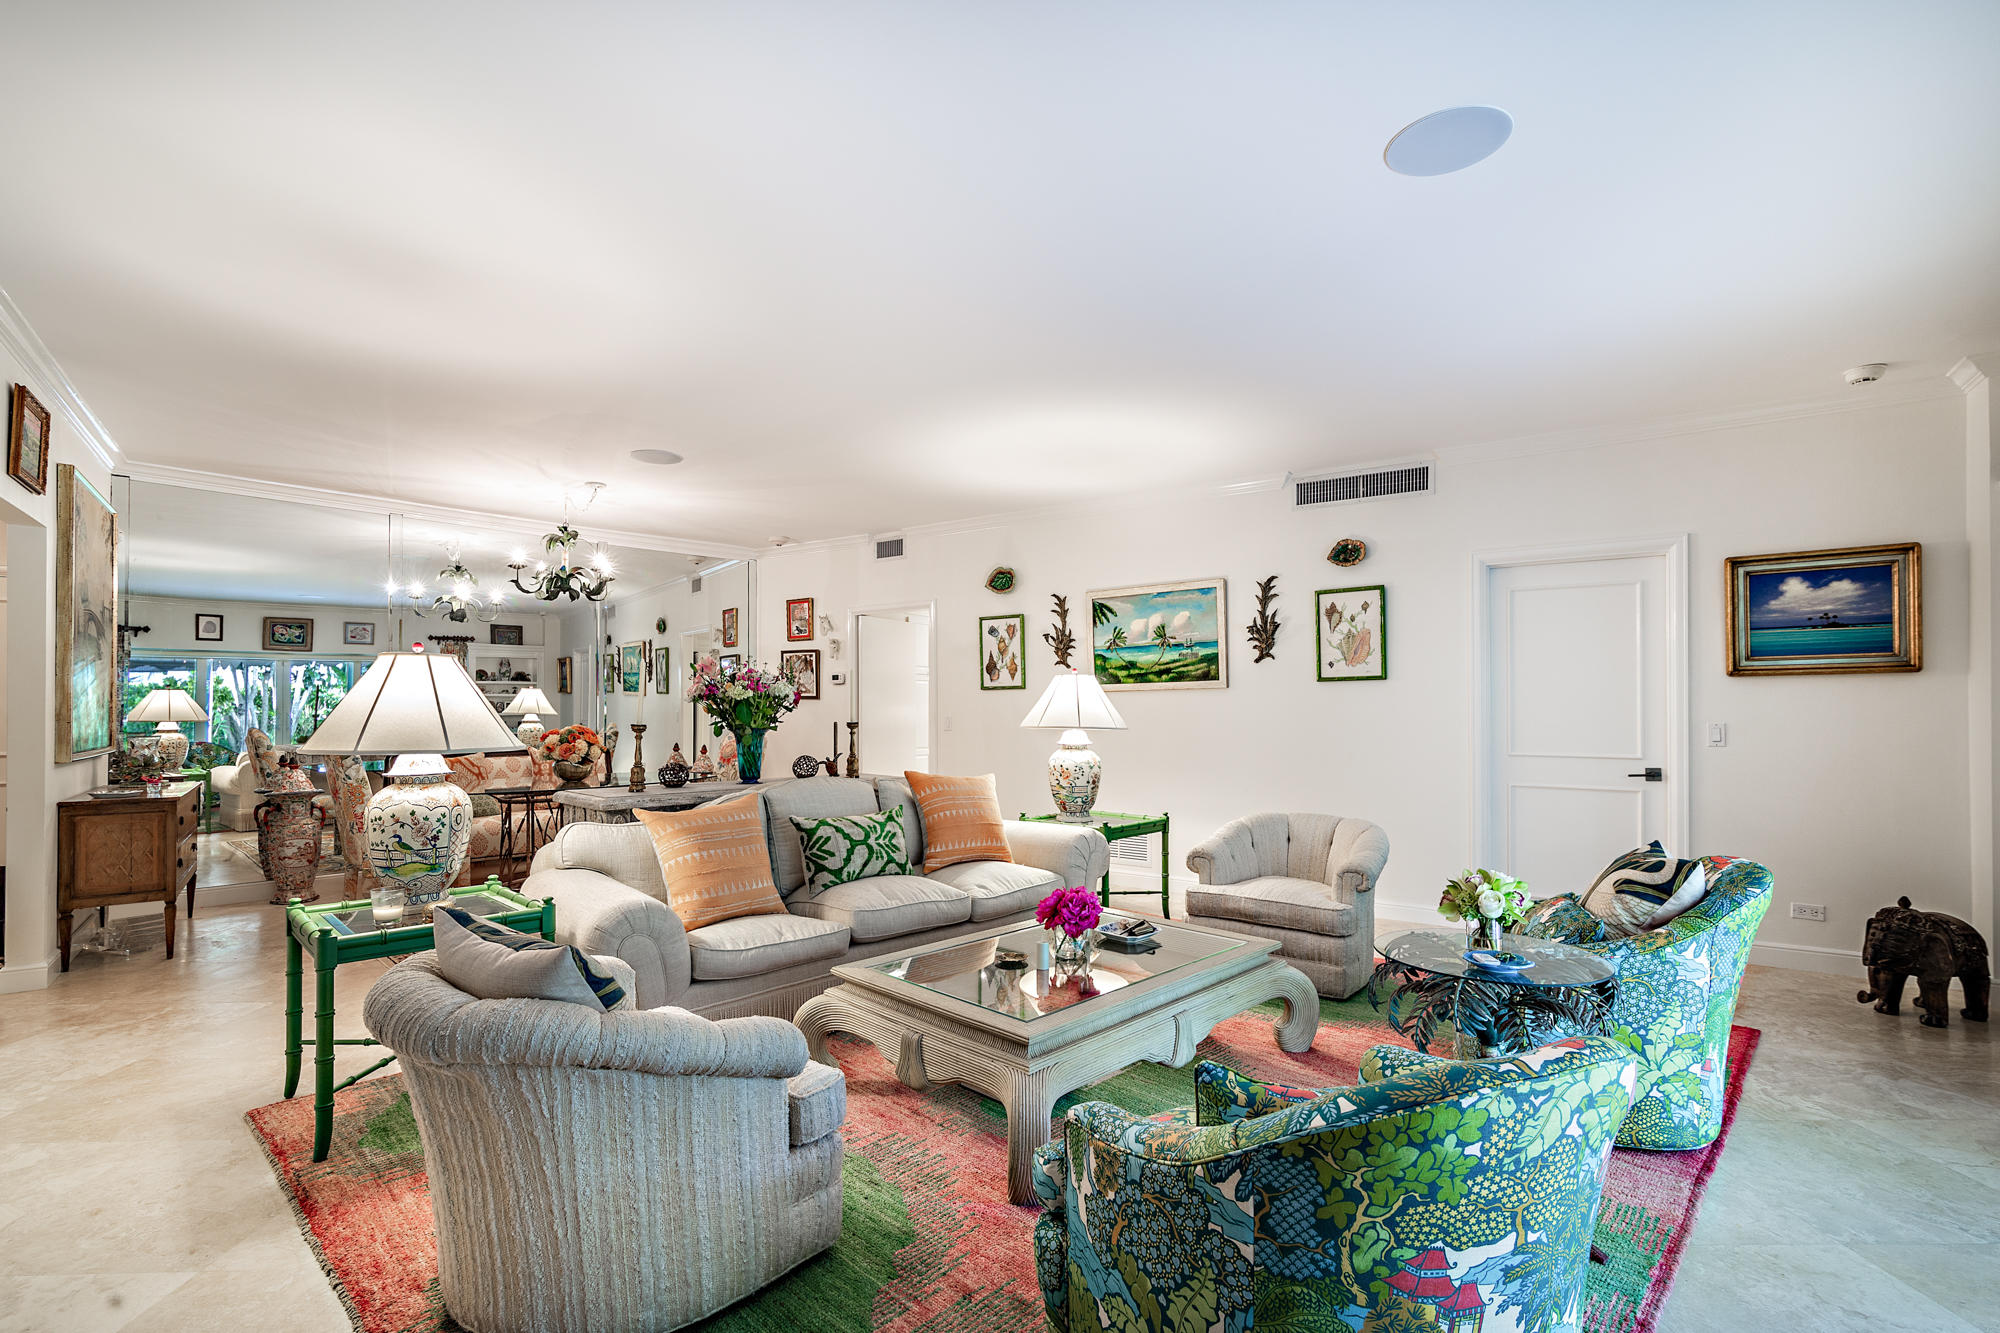 A sophisticated garden apartment with enormous covered loggia creates the ultimate Palm Beach lifestyle. This 2 bedroom, 2 bath apartment has impact glass sliding doors and is pet friendly. There is a washer & dryer in the unit. Included is a coveted covered parking space directly in front of the garden apartment.